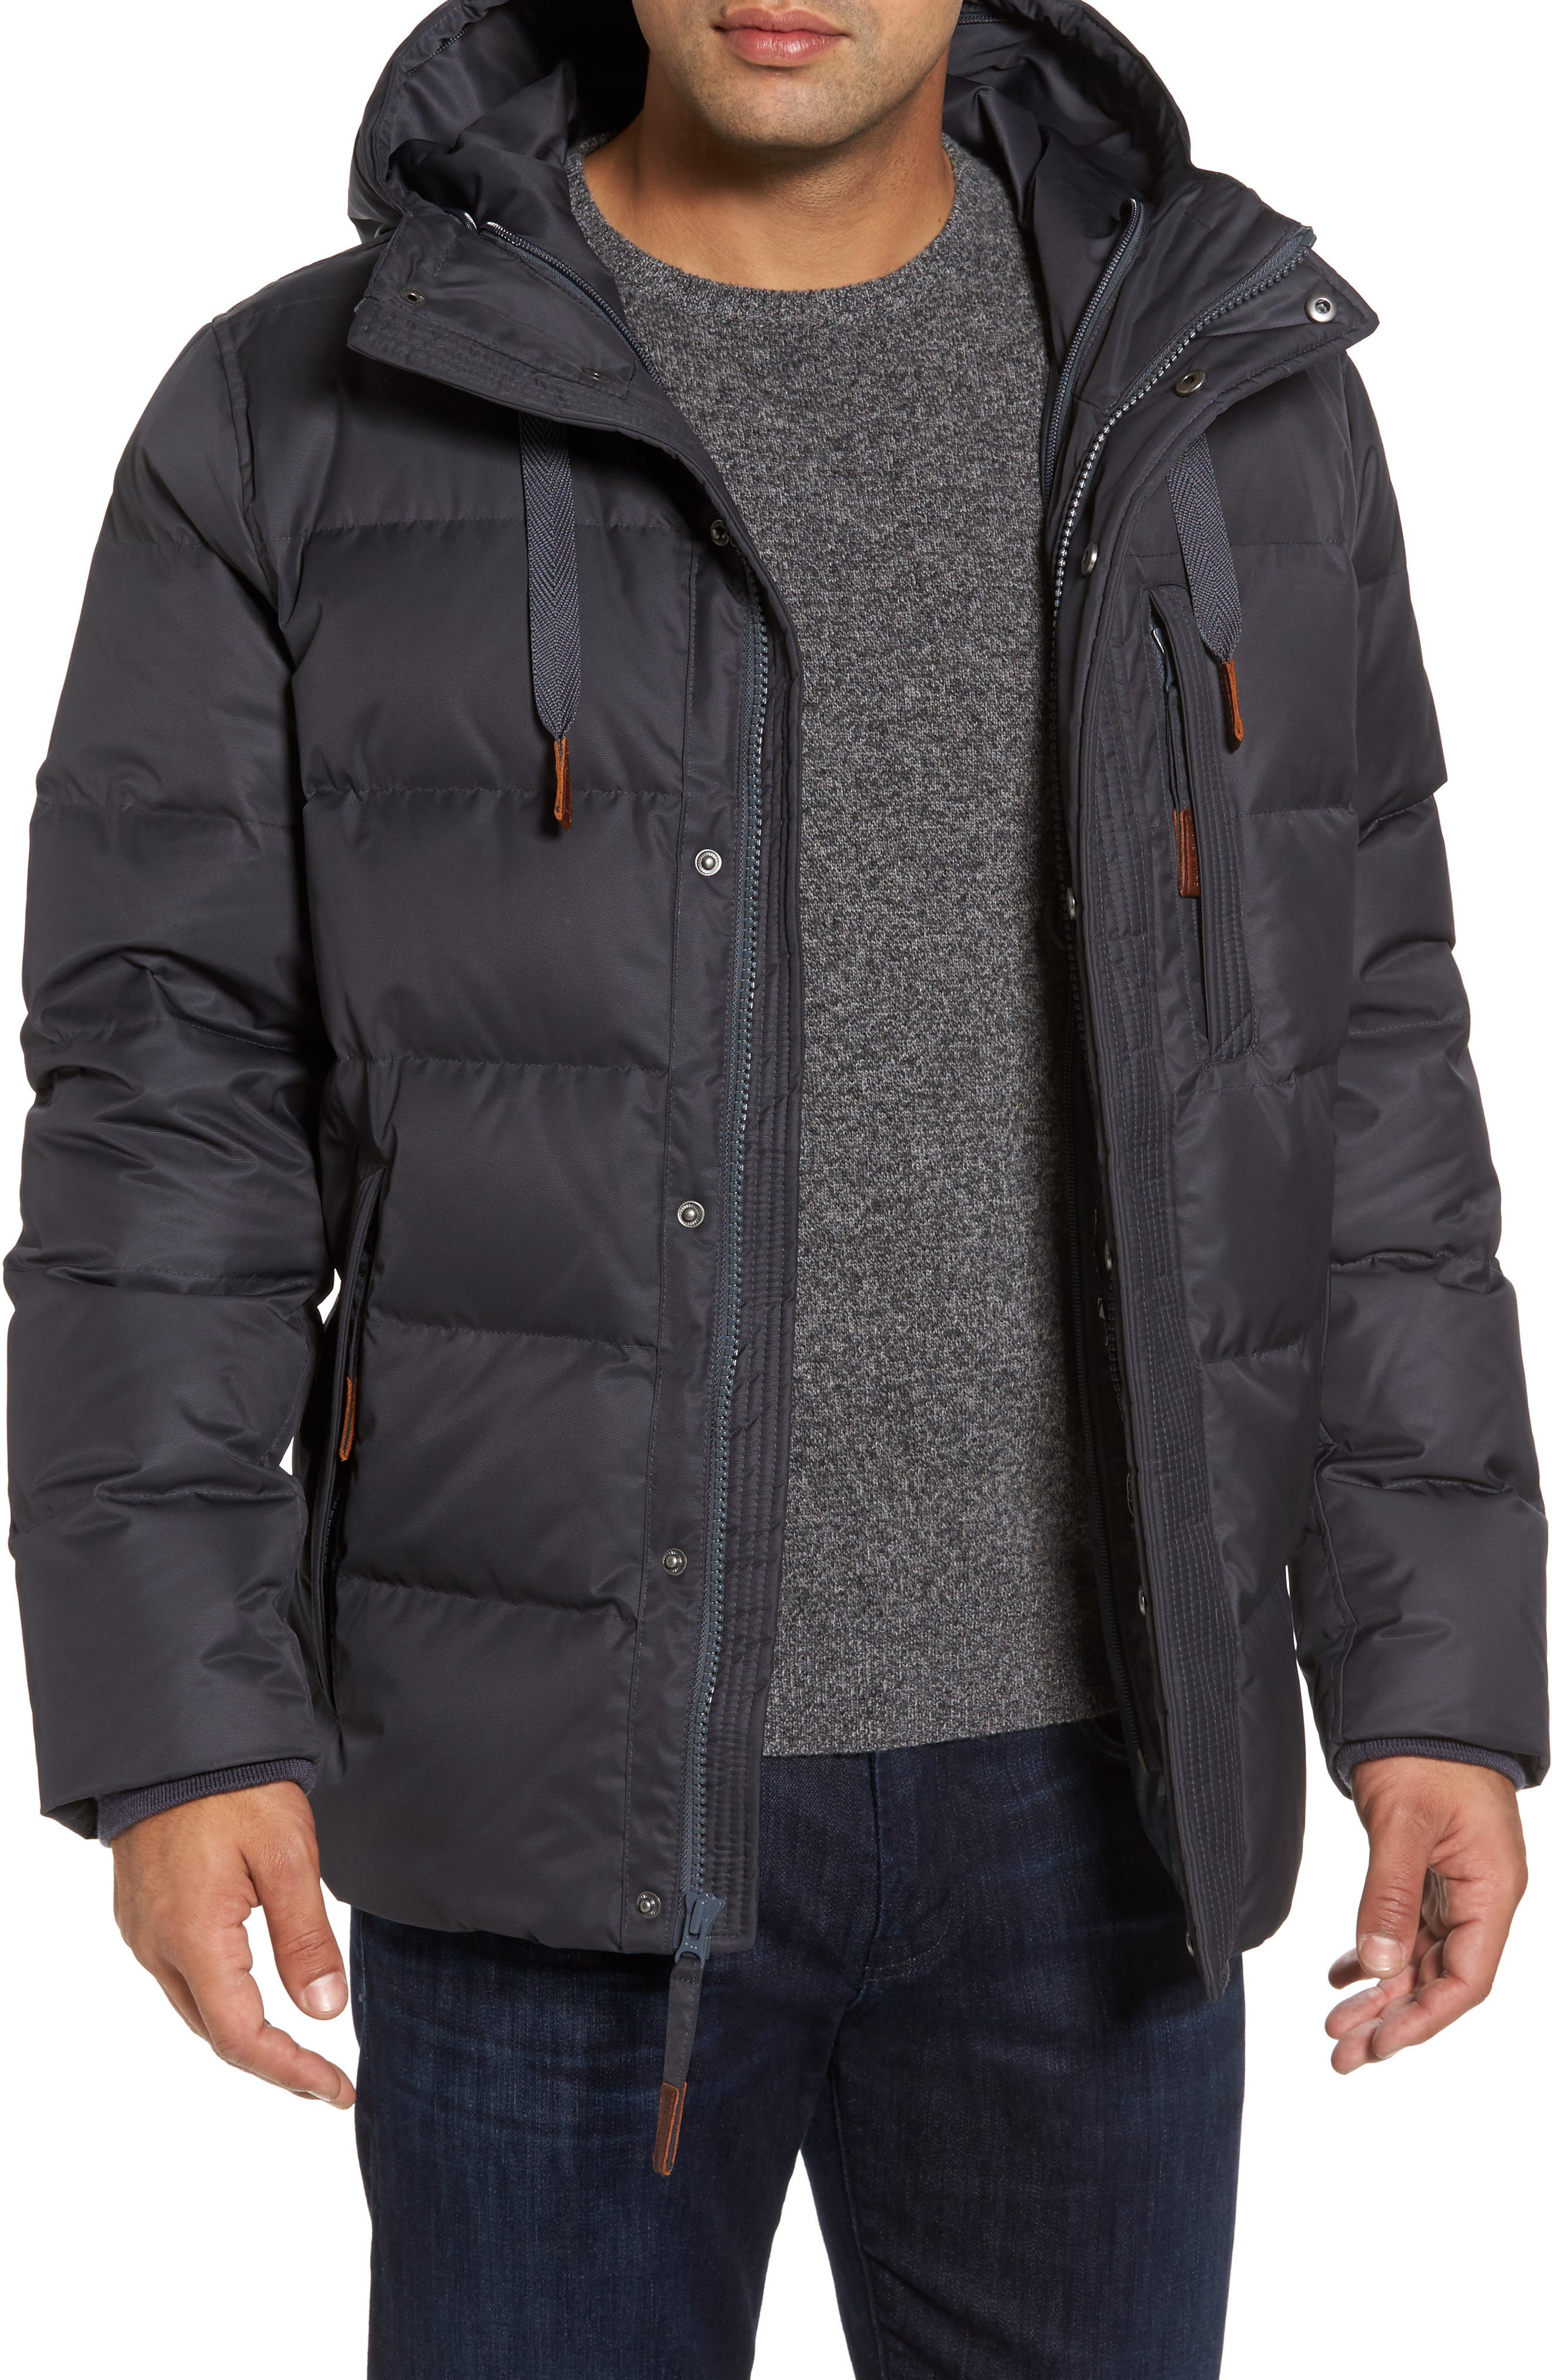 Groton Slim Down Jacket with Faux Shearling Lining,                             Alternate thumbnail 8, color,